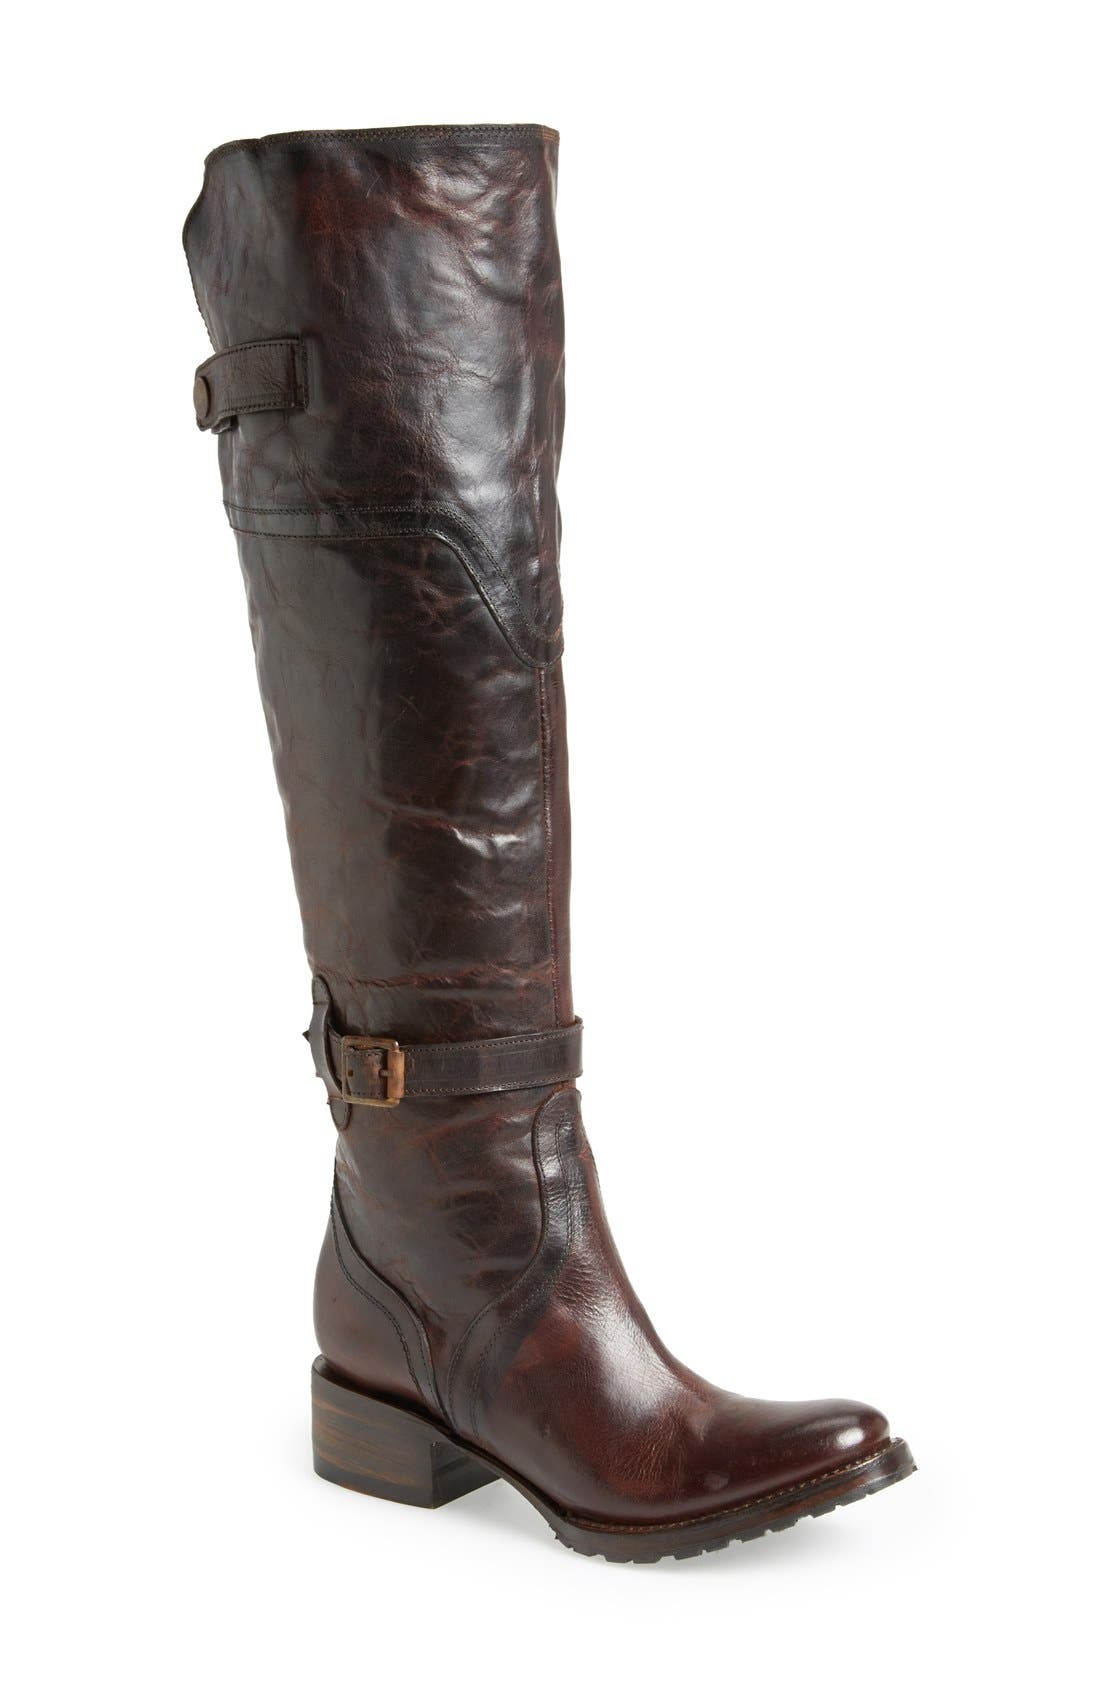 Alternate Image 1 Selected - Freebird by Steven 'Quebec' Leather Riding Boot (Women)